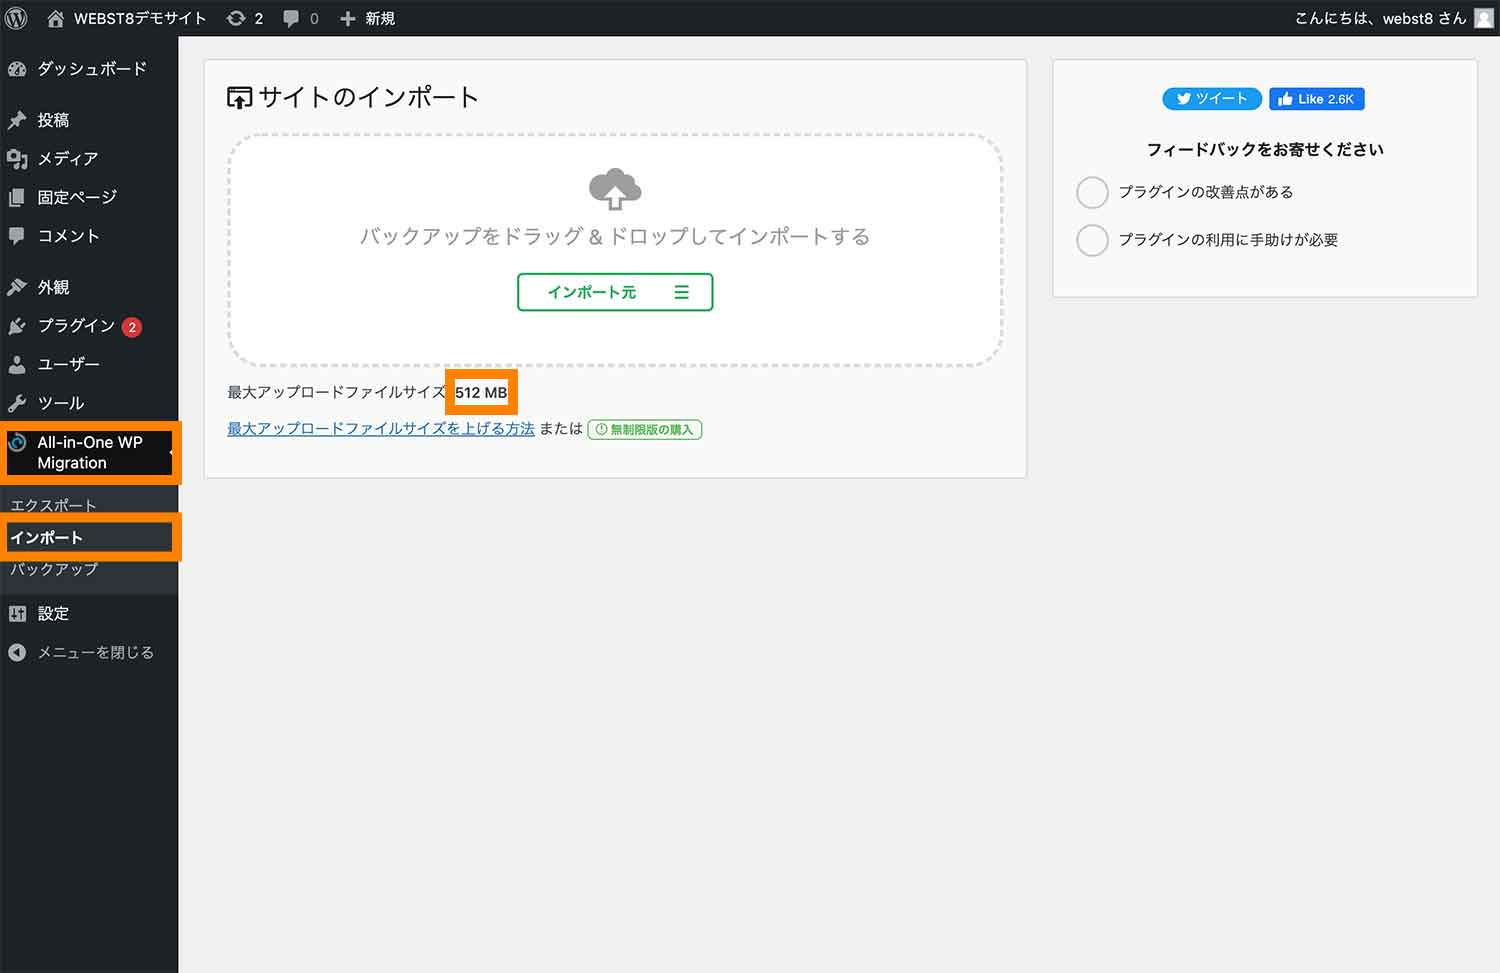 「All-in-One WP Migration」→「インポート」から最大アップロードサイズを確認